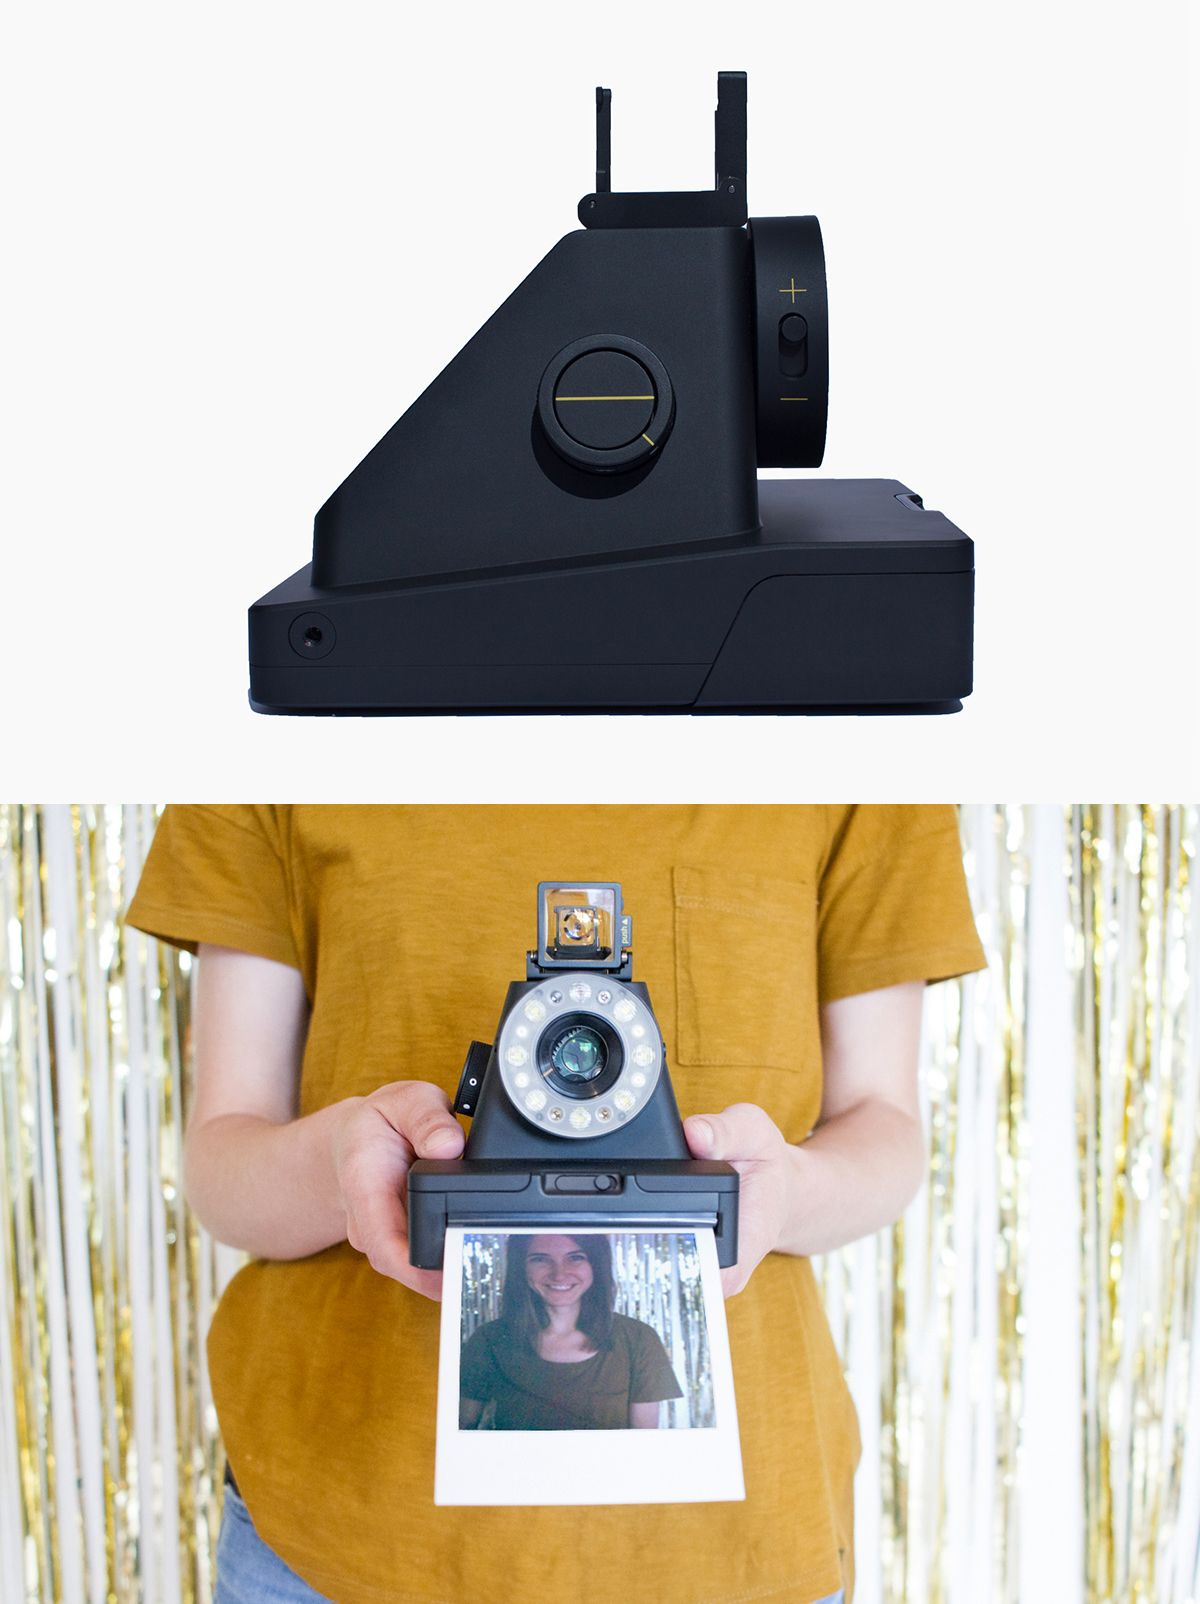 The First Brand New Camera For Original Format Instant Film In 20 Years Is Photojojo Shop Meet I 1 It Combines Analogue Fun